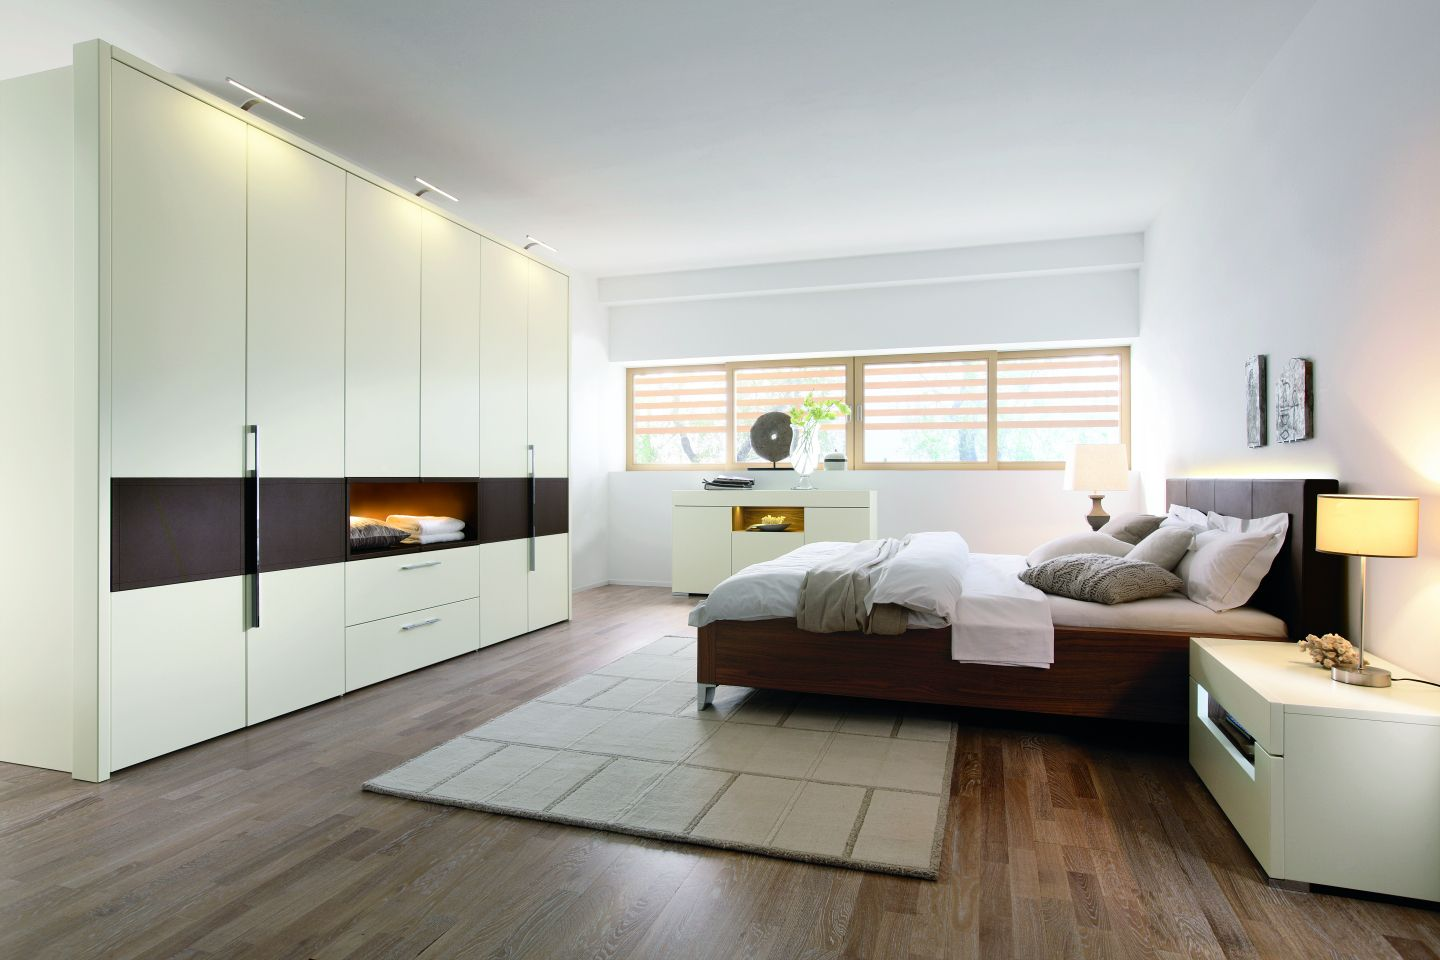 schlafzimmer mit beleuchtetem schranksystem. Black Bedroom Furniture Sets. Home Design Ideas